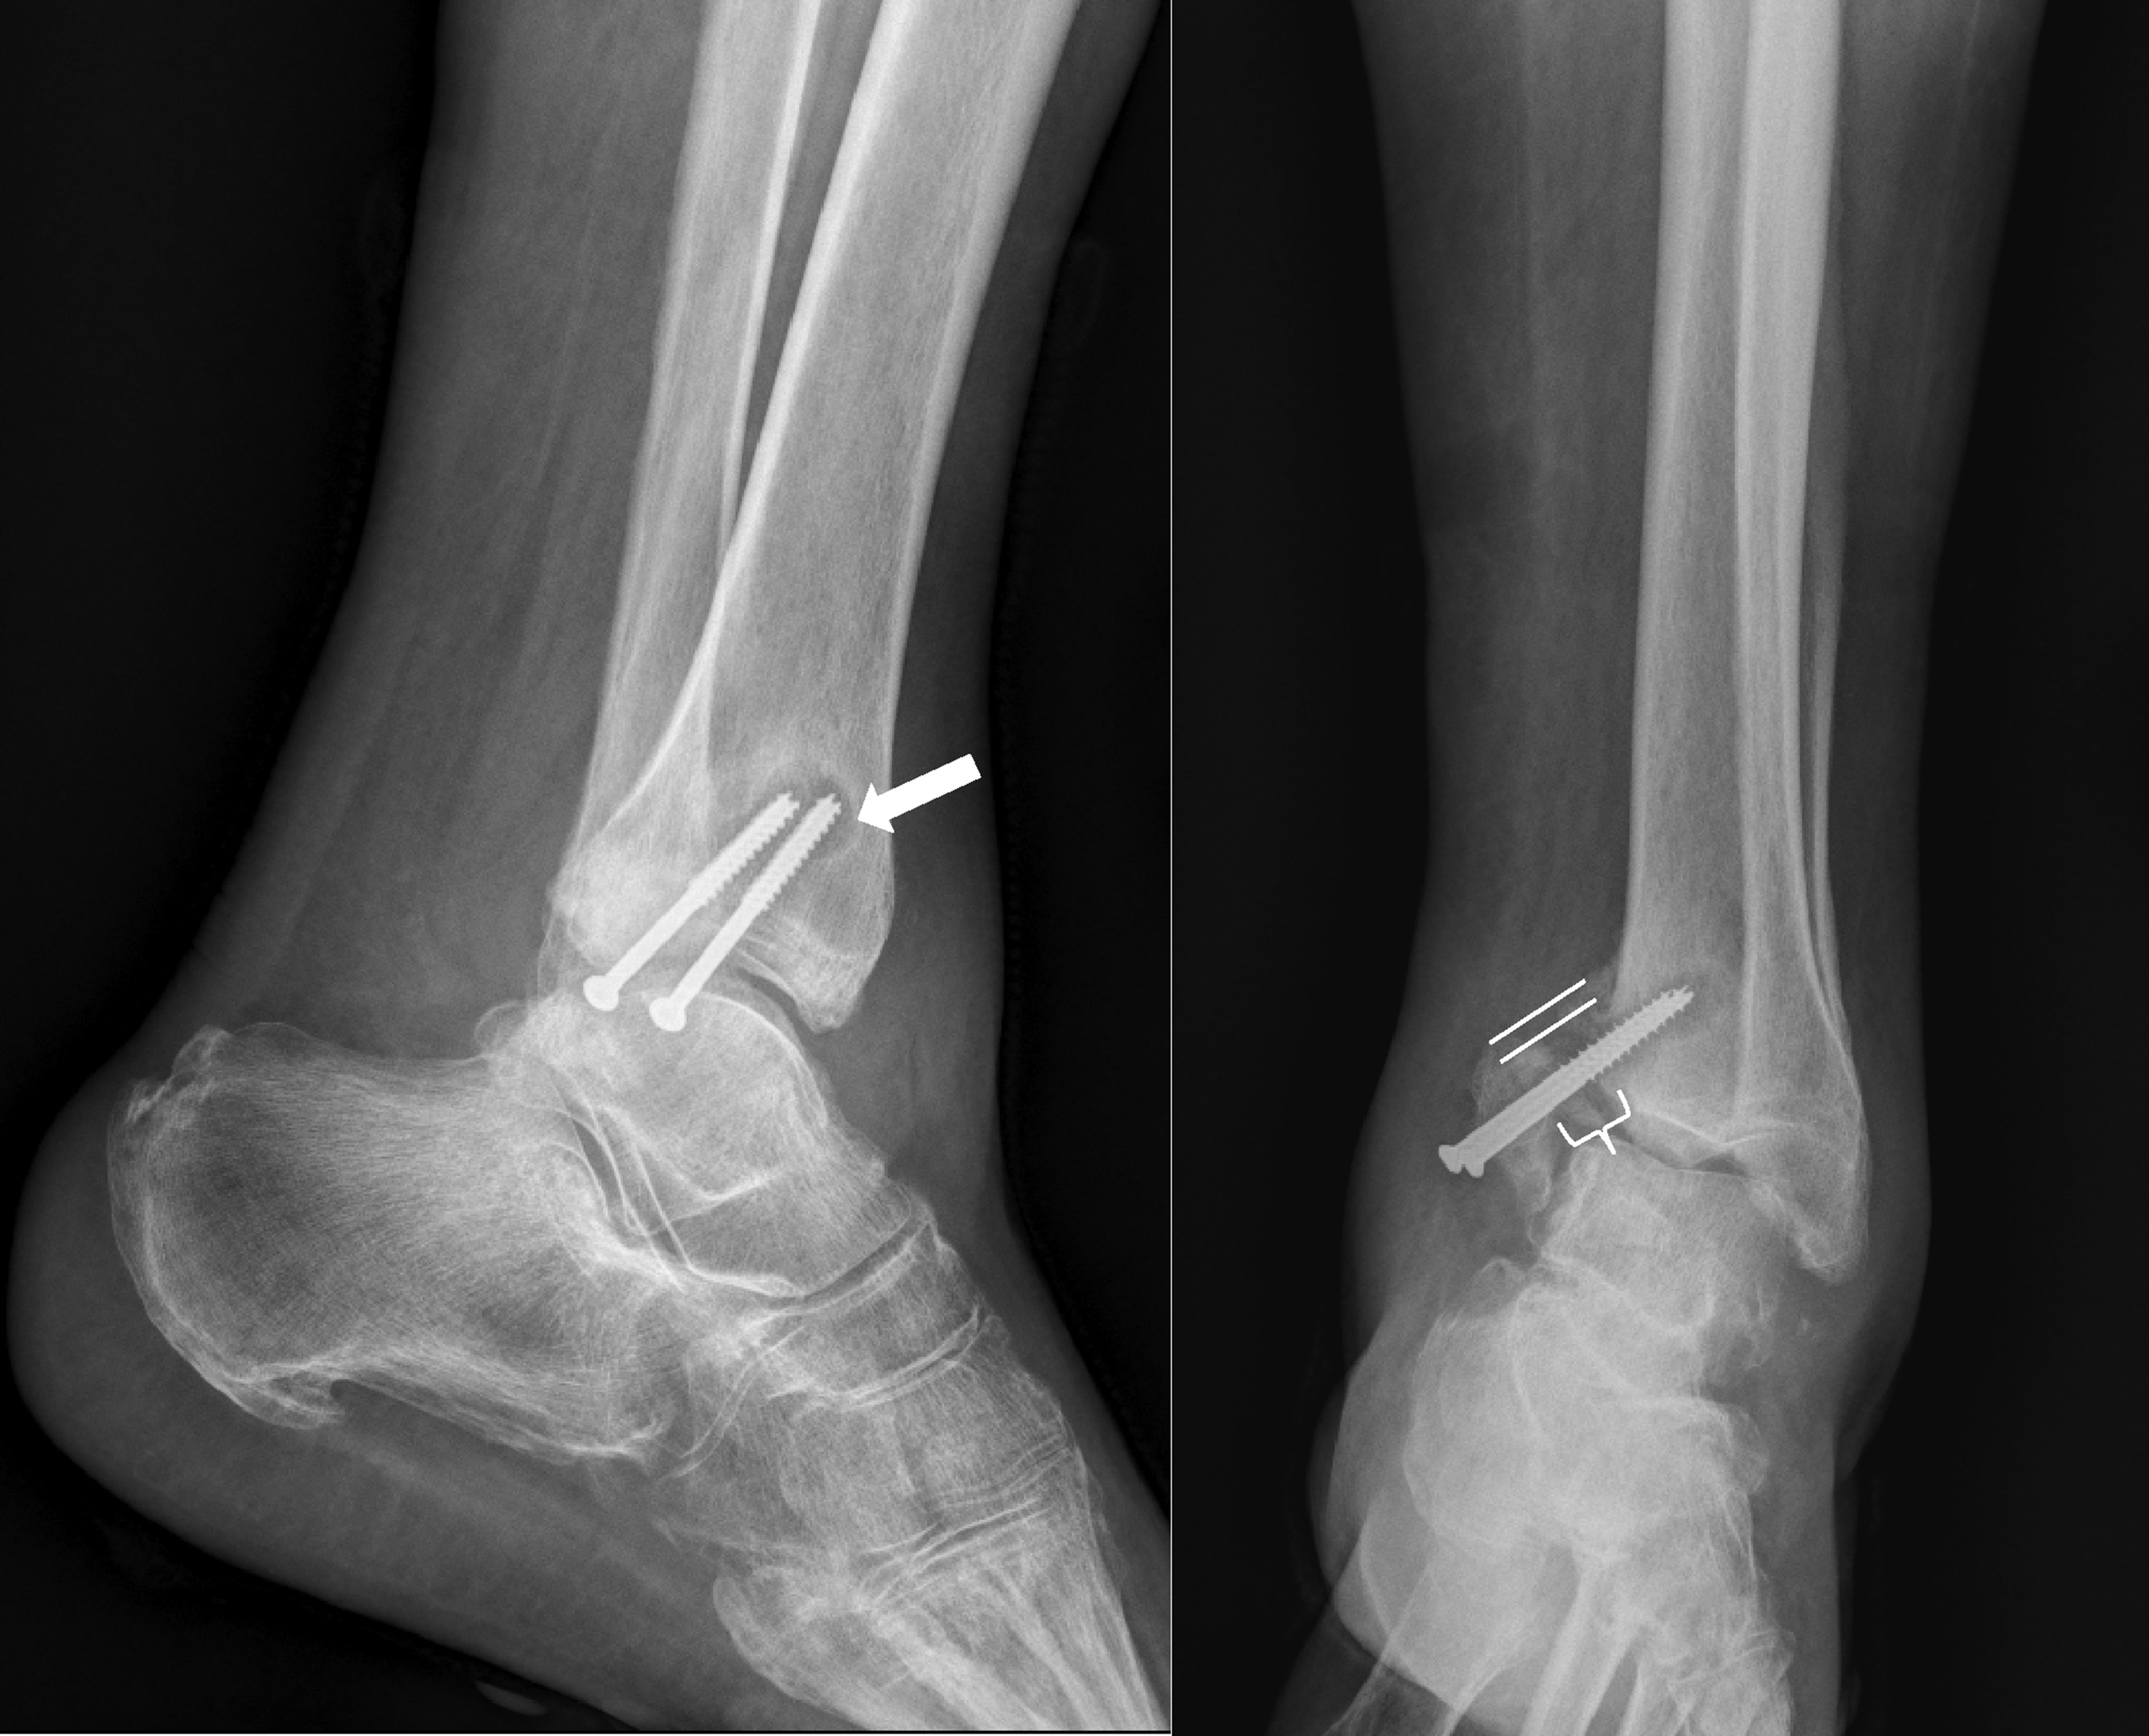 underestimating the effects of bone fractures Factors that increase fracture risk include lower bone mass in type 1 diabetes   despite preserved bone density in type 2 diabetes, as well as the effects of  risk  factors taken into account, frax underestimates fracture risk in patients with.